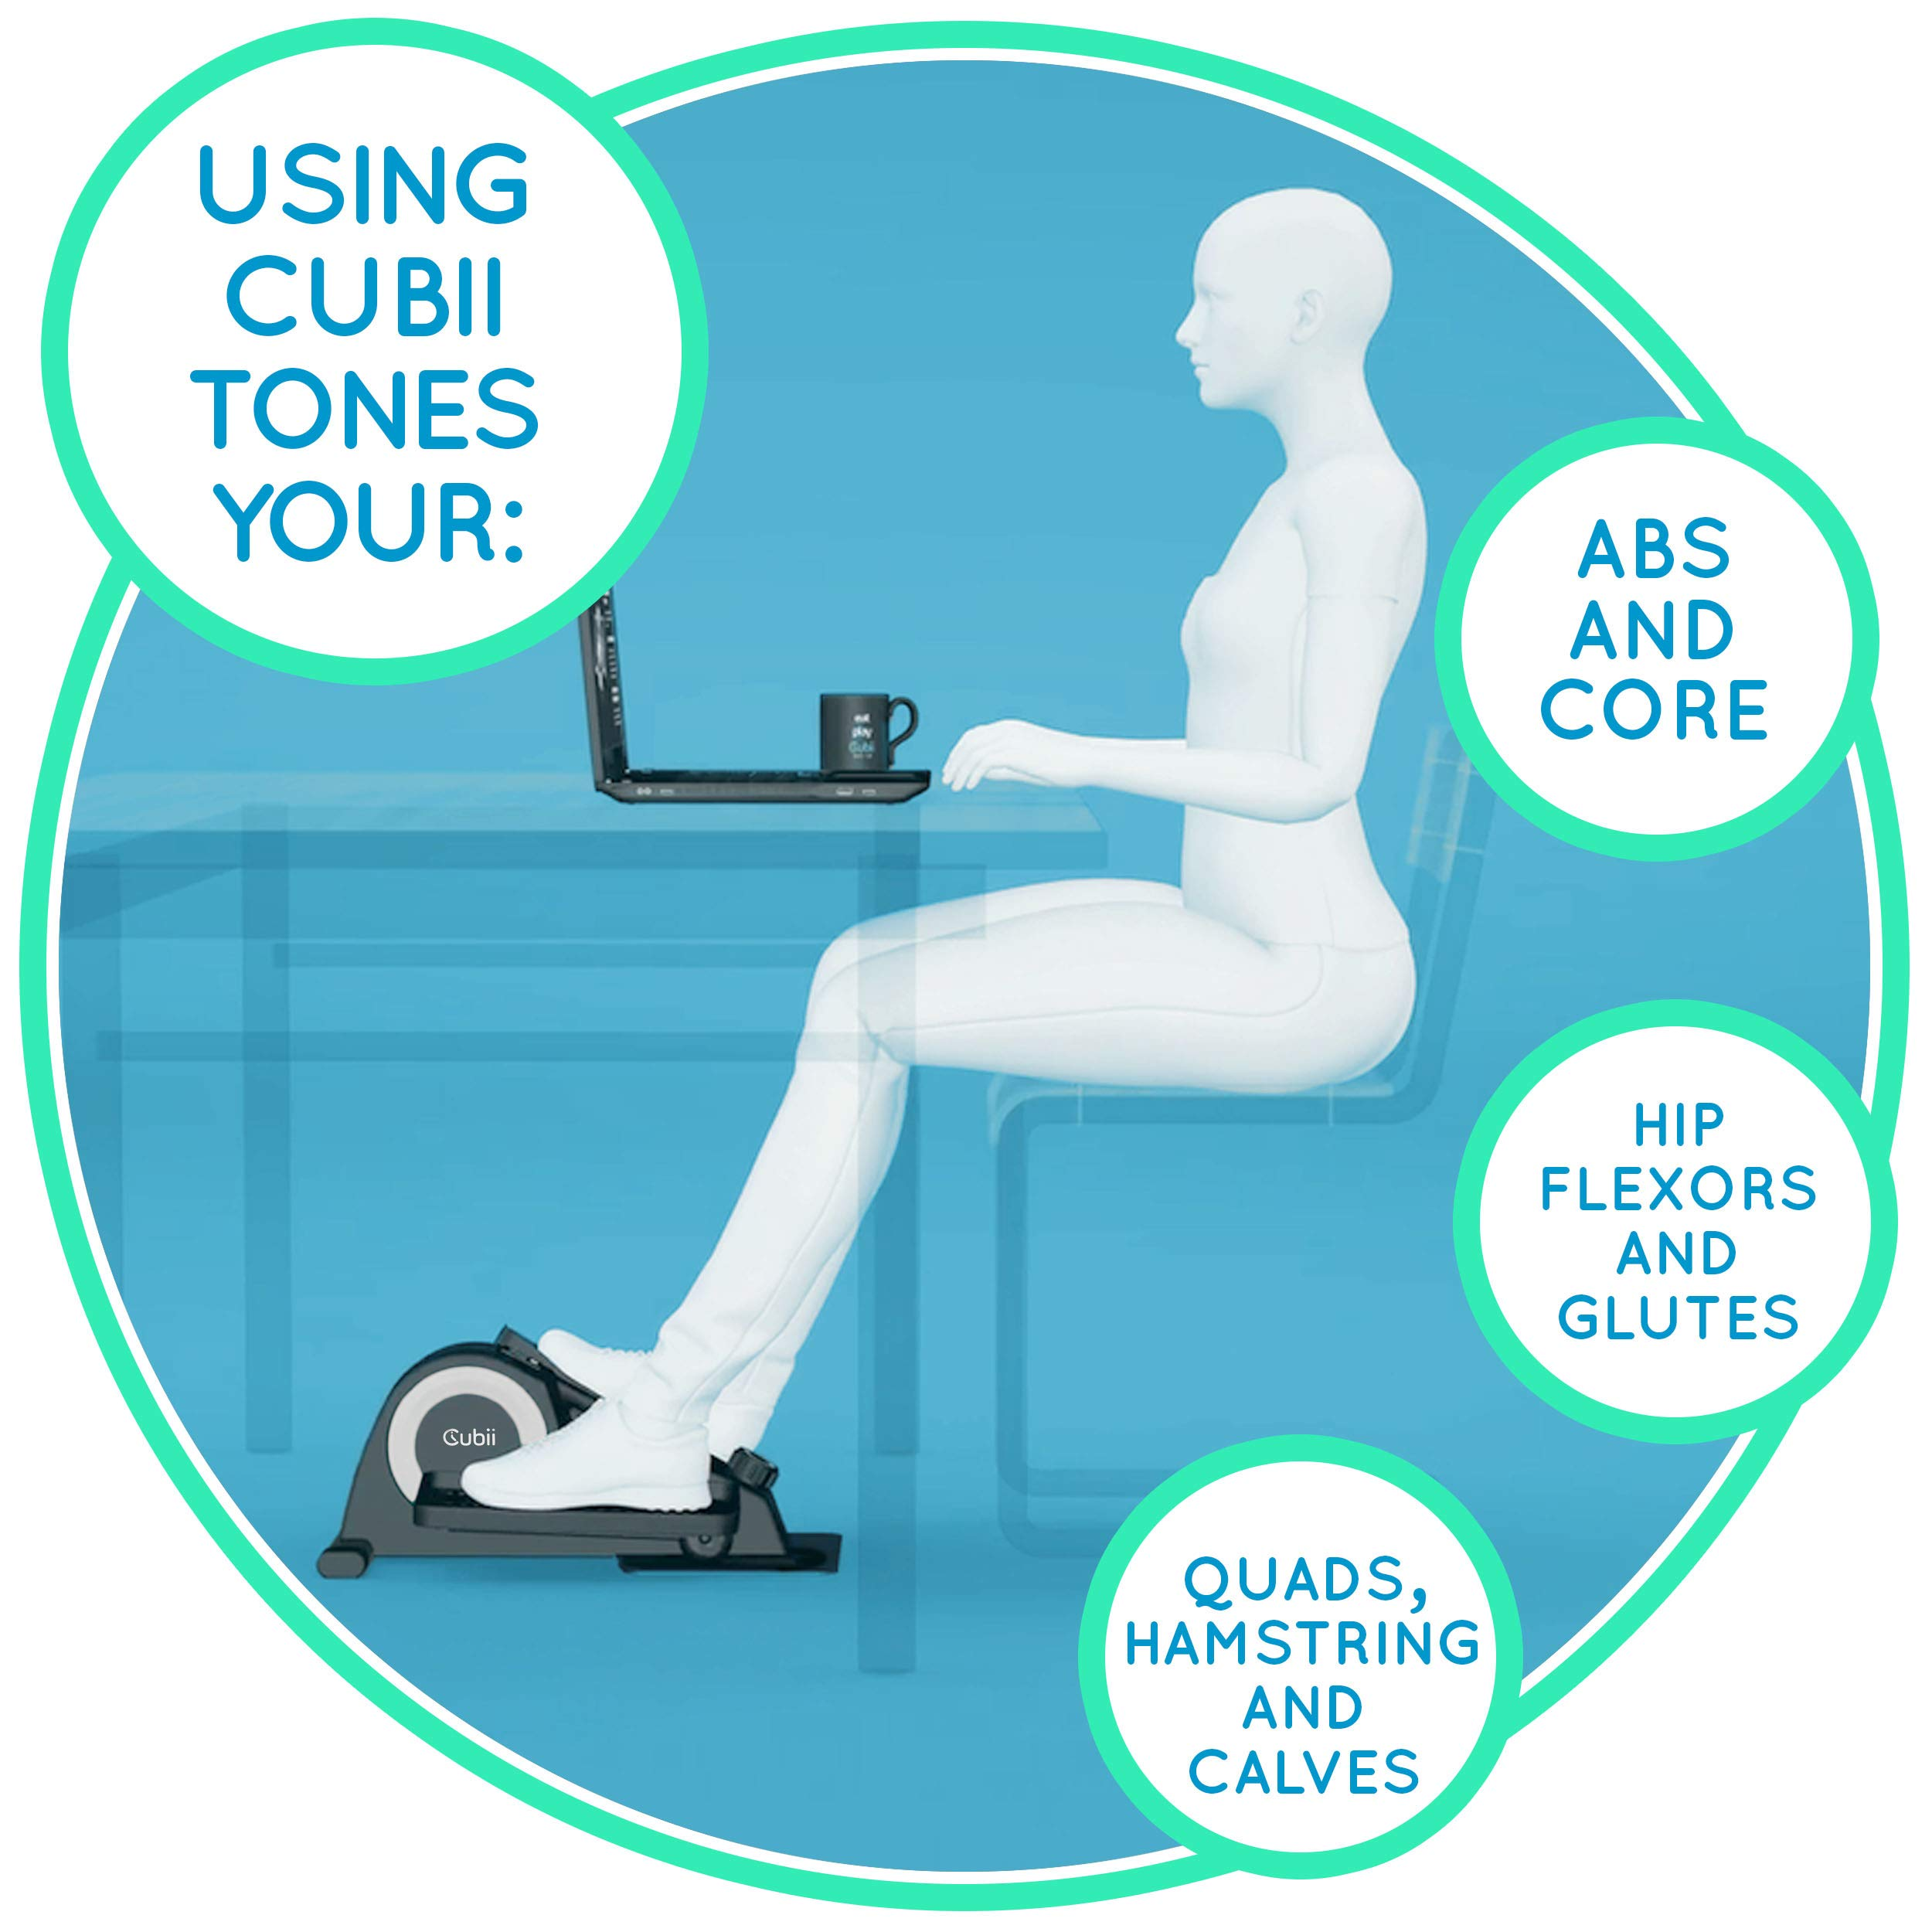 Cubii Jr: Desk Elliptical w/Built in Display Monitor, Easy Assembly, Quiet & Compact, Adjustable Resistance (Silver) by Cubii (Image #3)